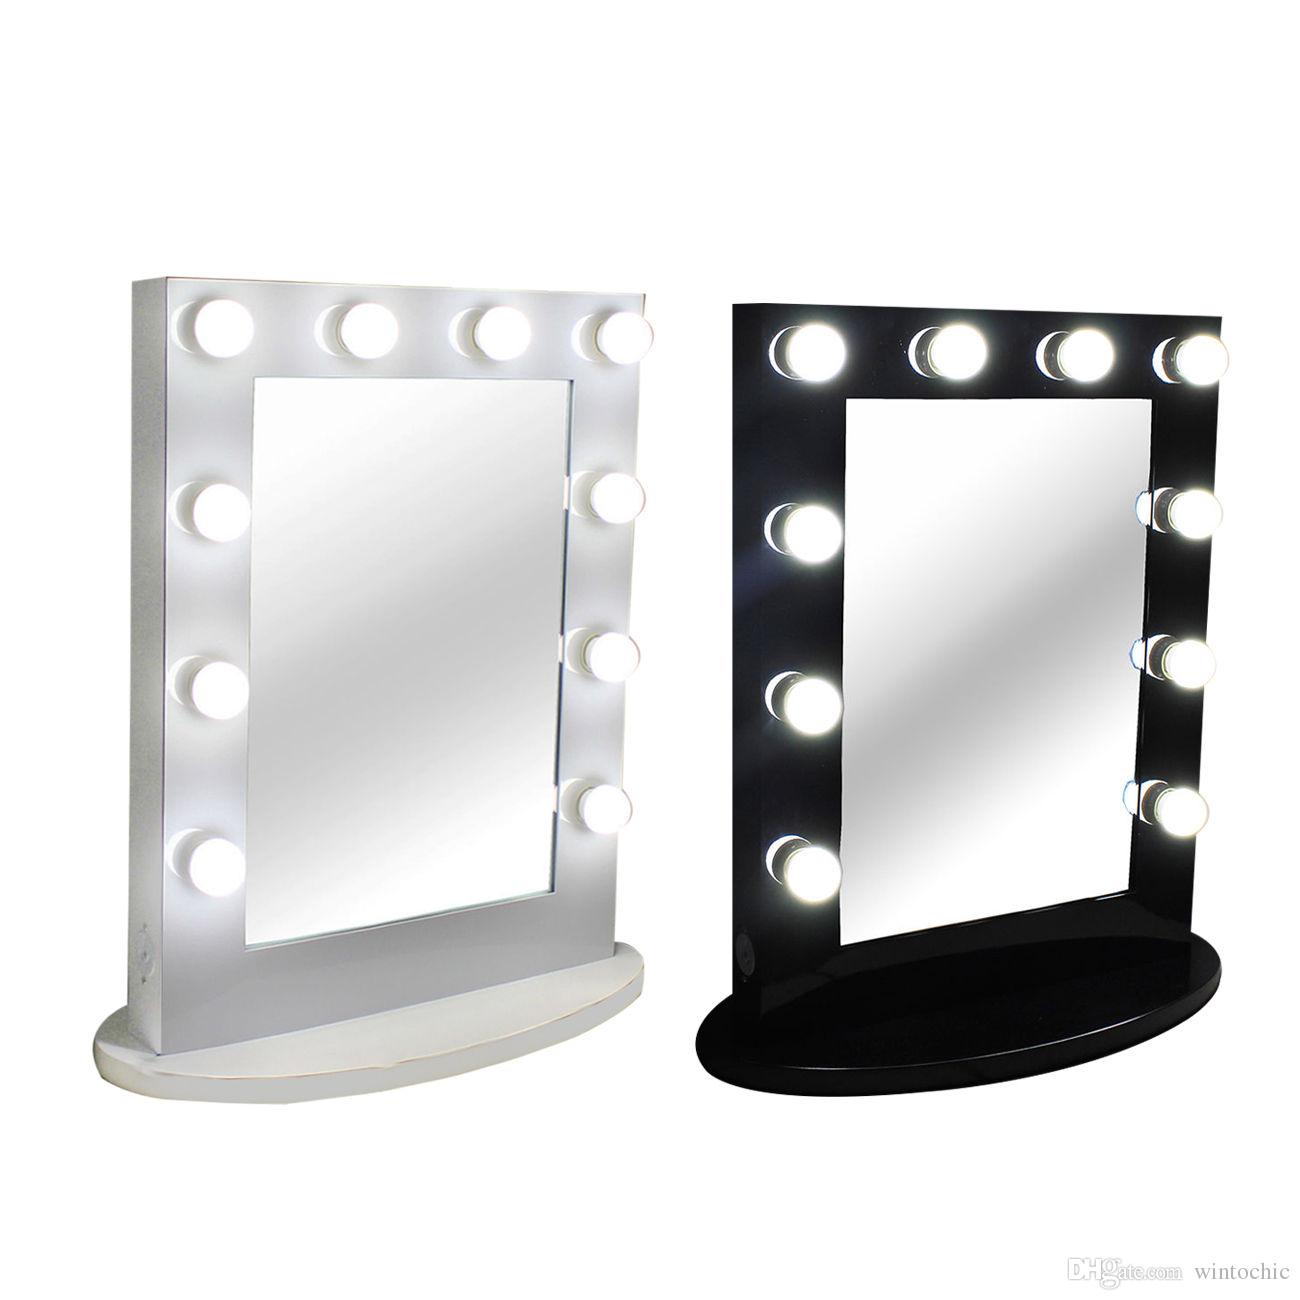 Hollywood tabletops makeup lighted mirror vanity light with dimmer hollywood tabletops makeup lighted mirror vanity light with dimmer aluminum frame stage beauty mirrorfree 12 led bulbs mirrors for bathrooms mirrors with mozeypictures